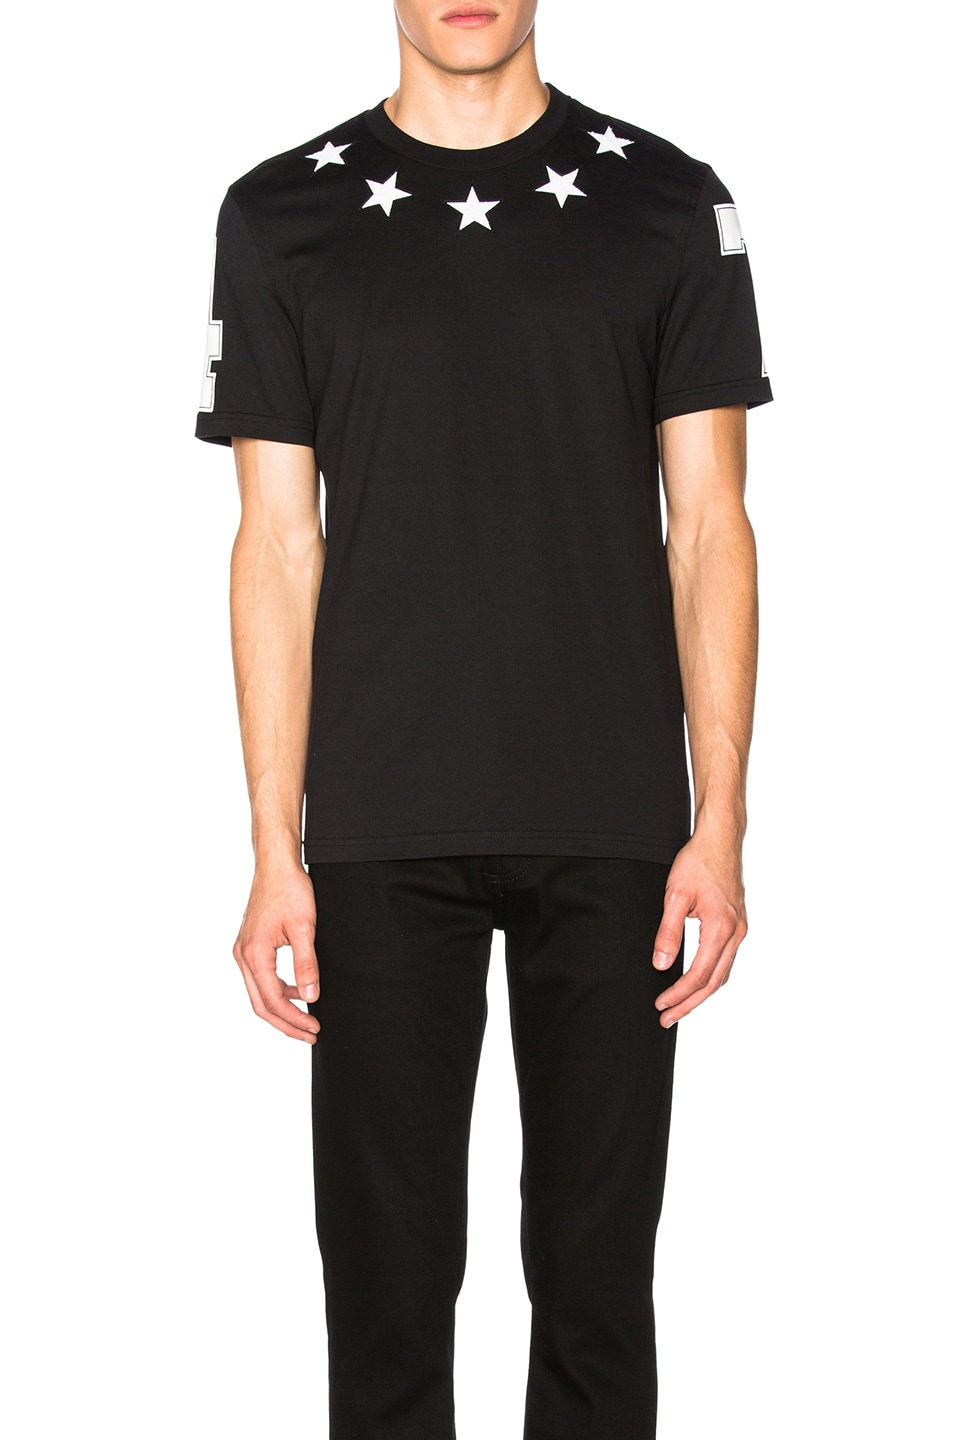 Givenchy star patches cuban fit cotton t shirt black for Givenchy 5 star shirt